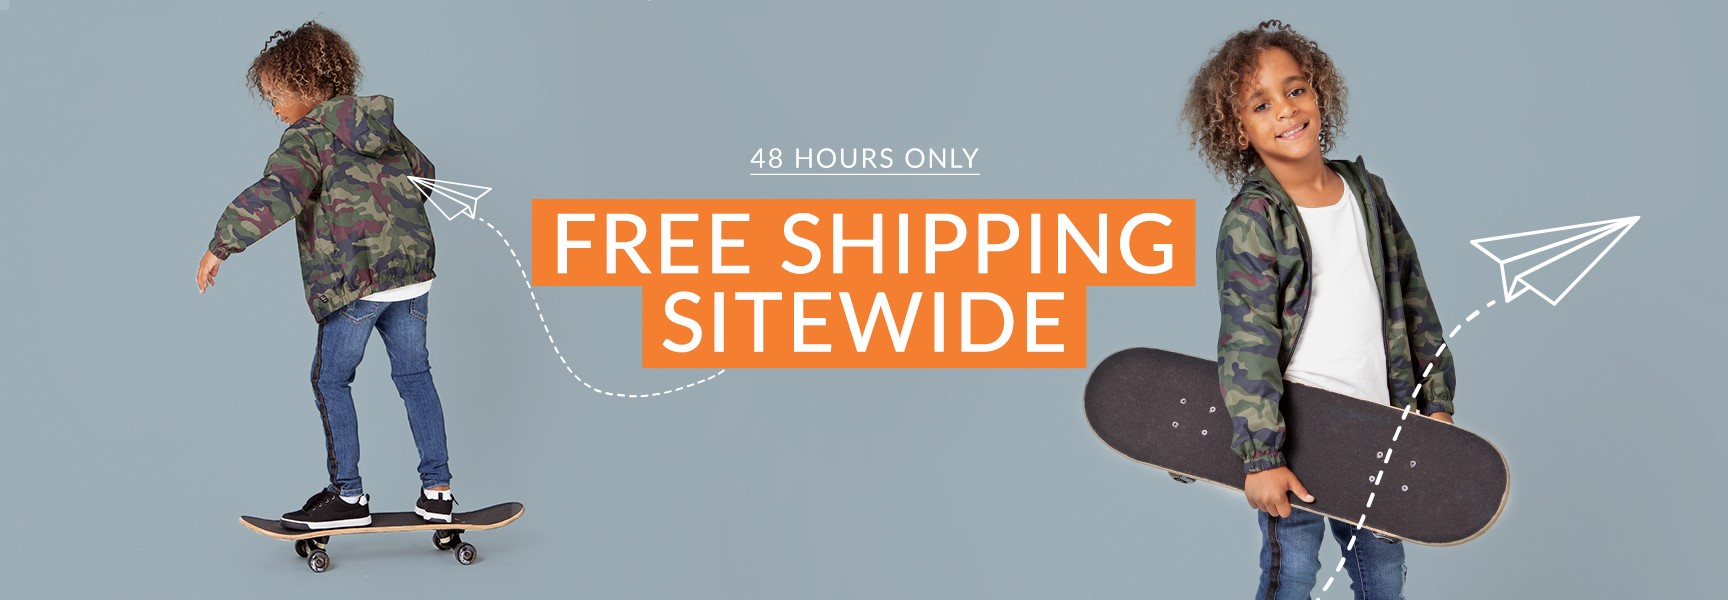 freeshipping_desktop